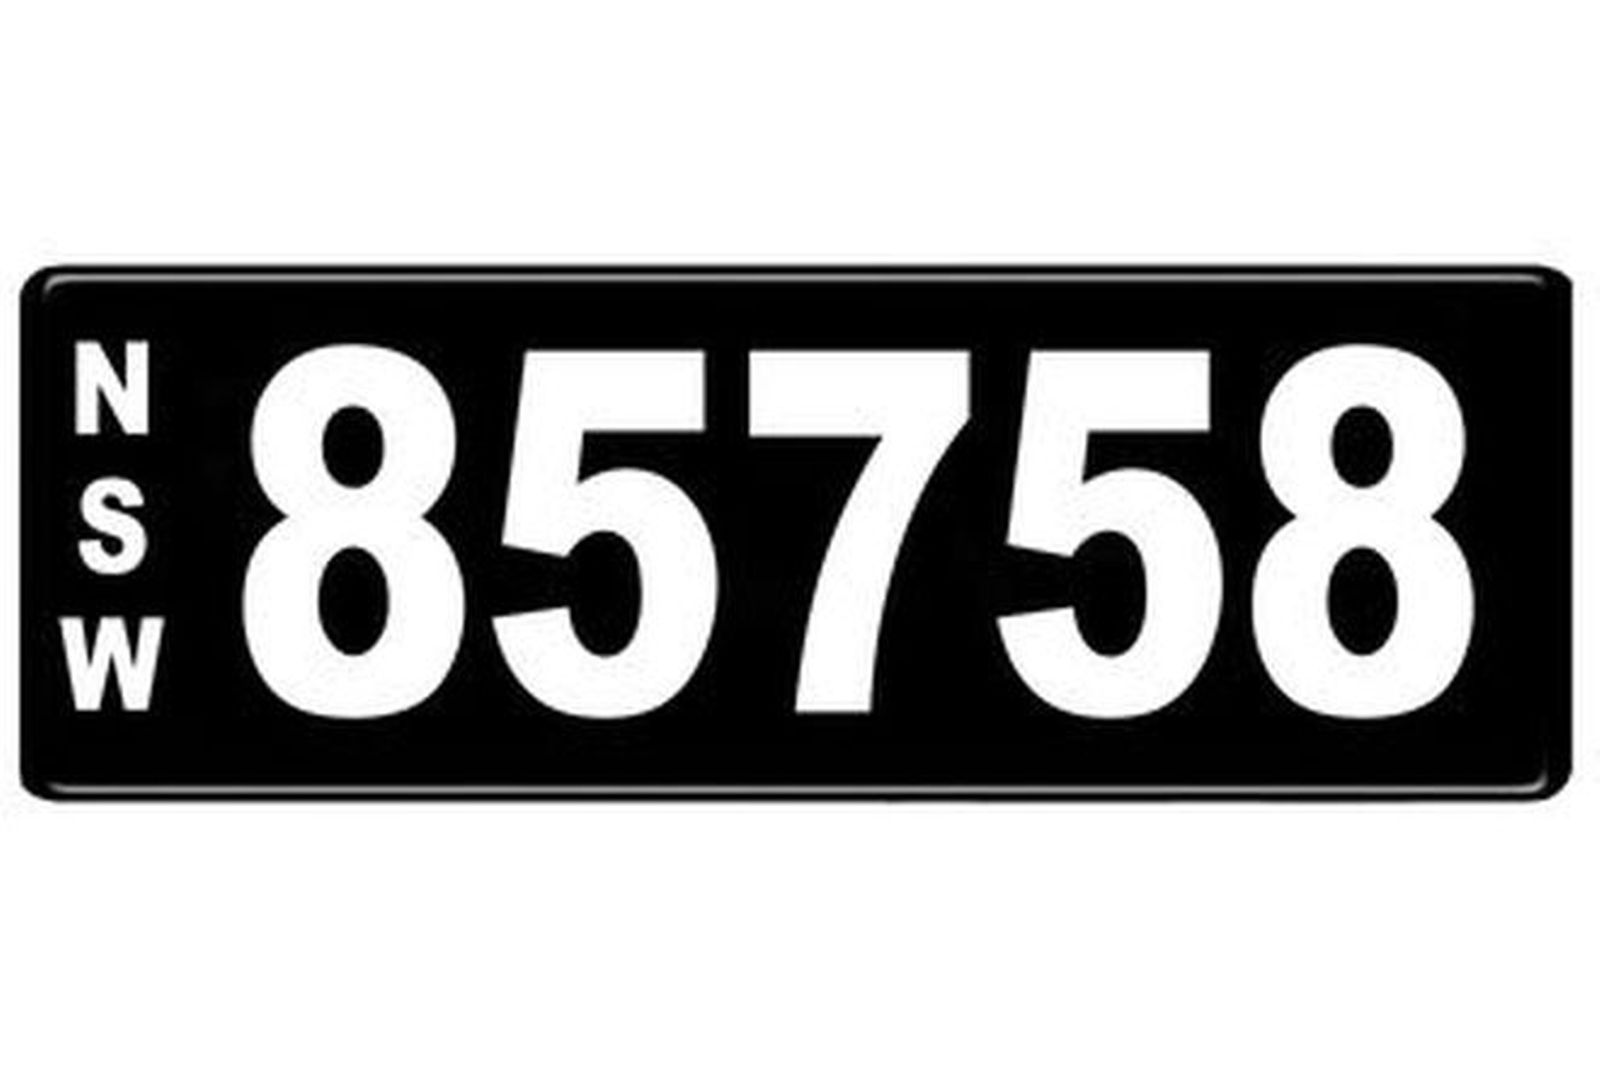 Number Plates - NSW Numerical Number Plates '85758'